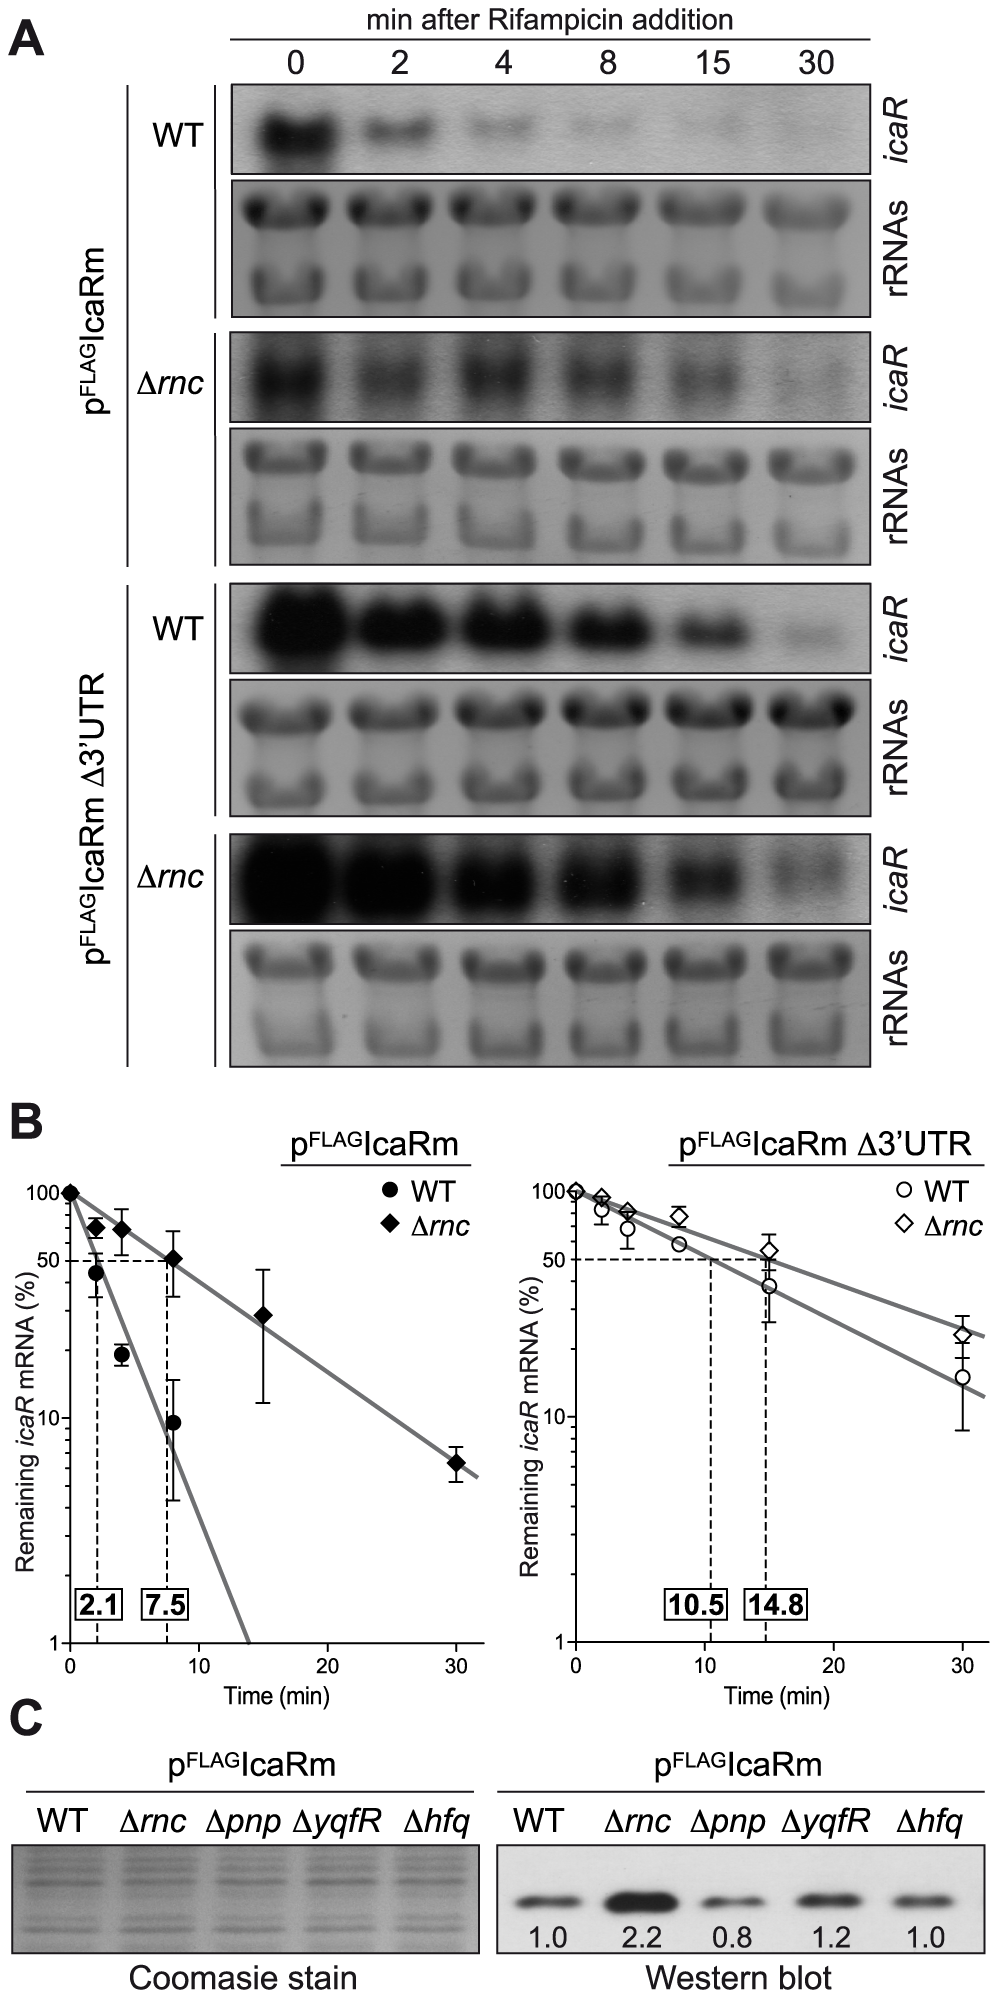 Deletion of <i>rnc</i> gene, which encodes the double stranded endoribonuclease RNase III, affects <i>icaR</i> mRNA stability and IcaR protein levels.